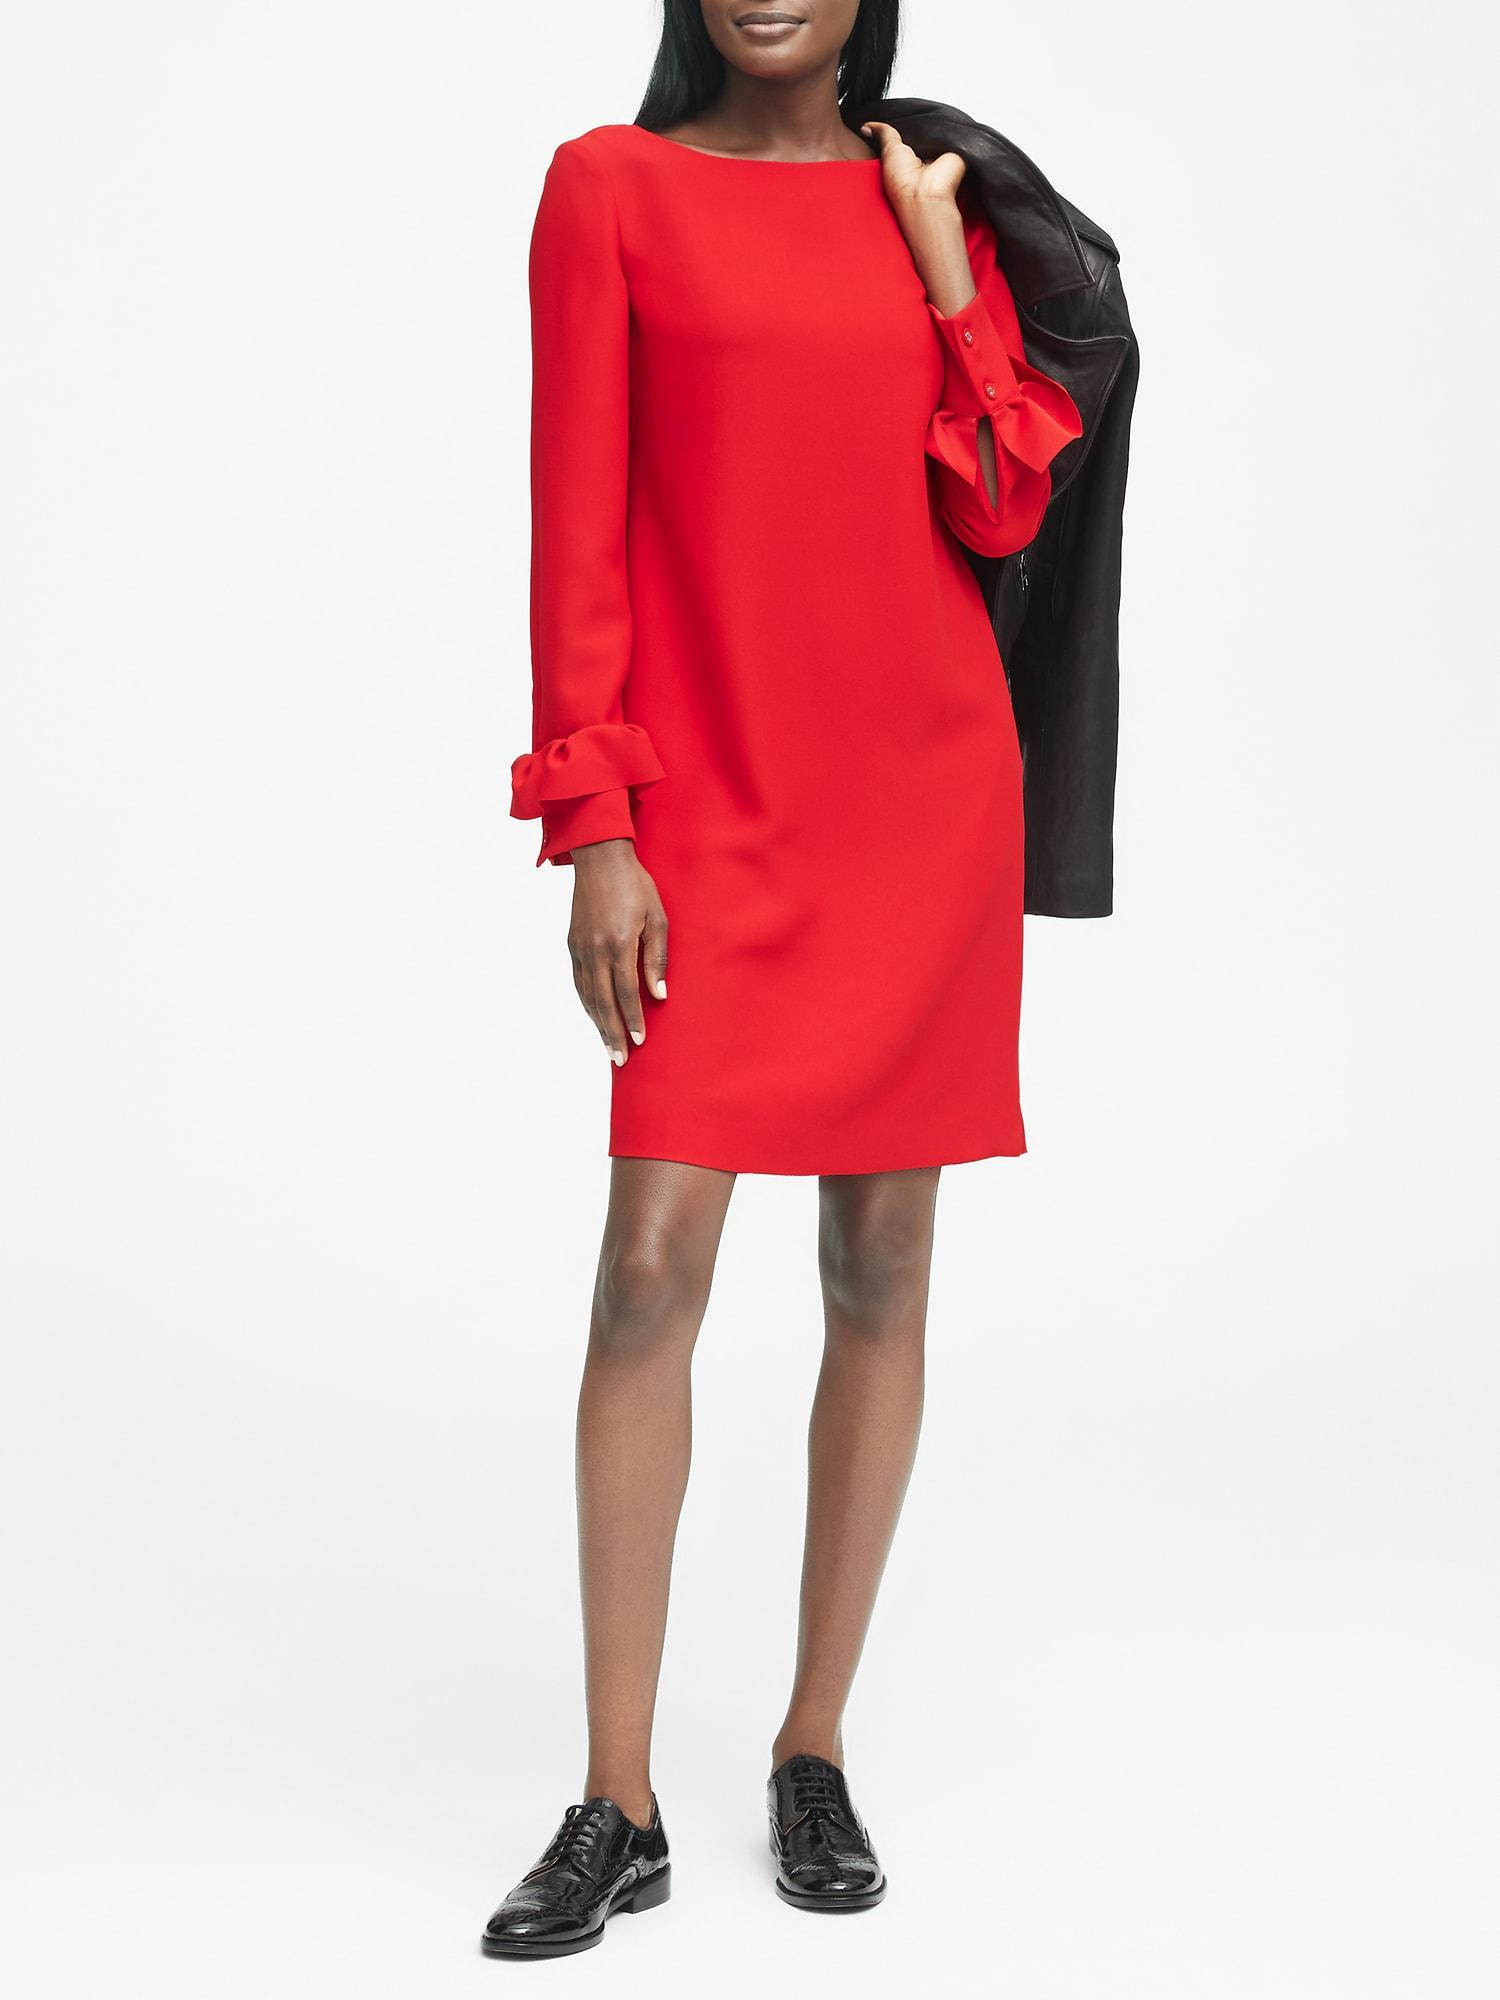 8899b404a0 Lyst - Banana Republic Petite Ruffle-cuff Button-back Dress in Red